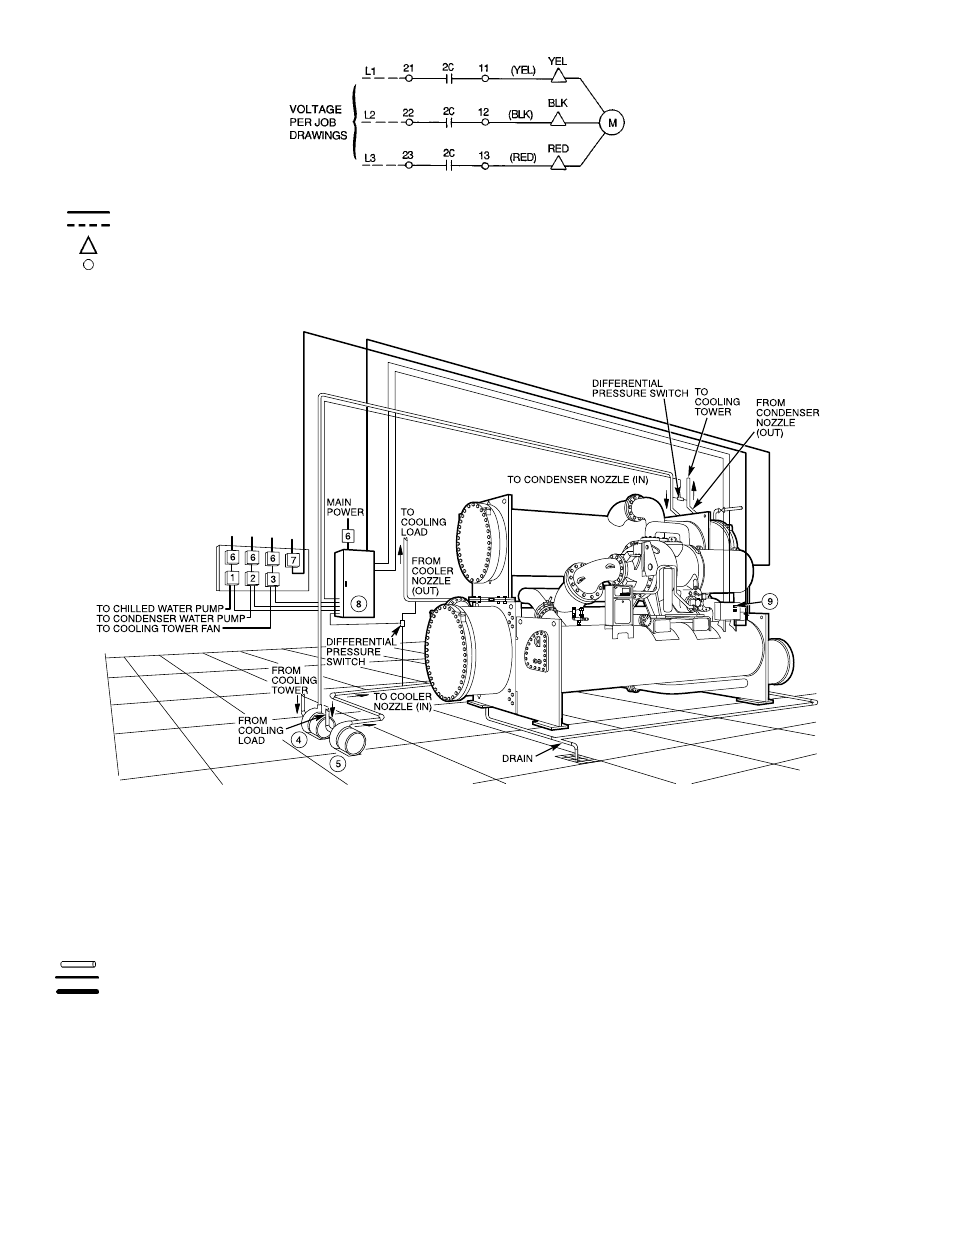 Centrifugal Chiller Piping Diagrams